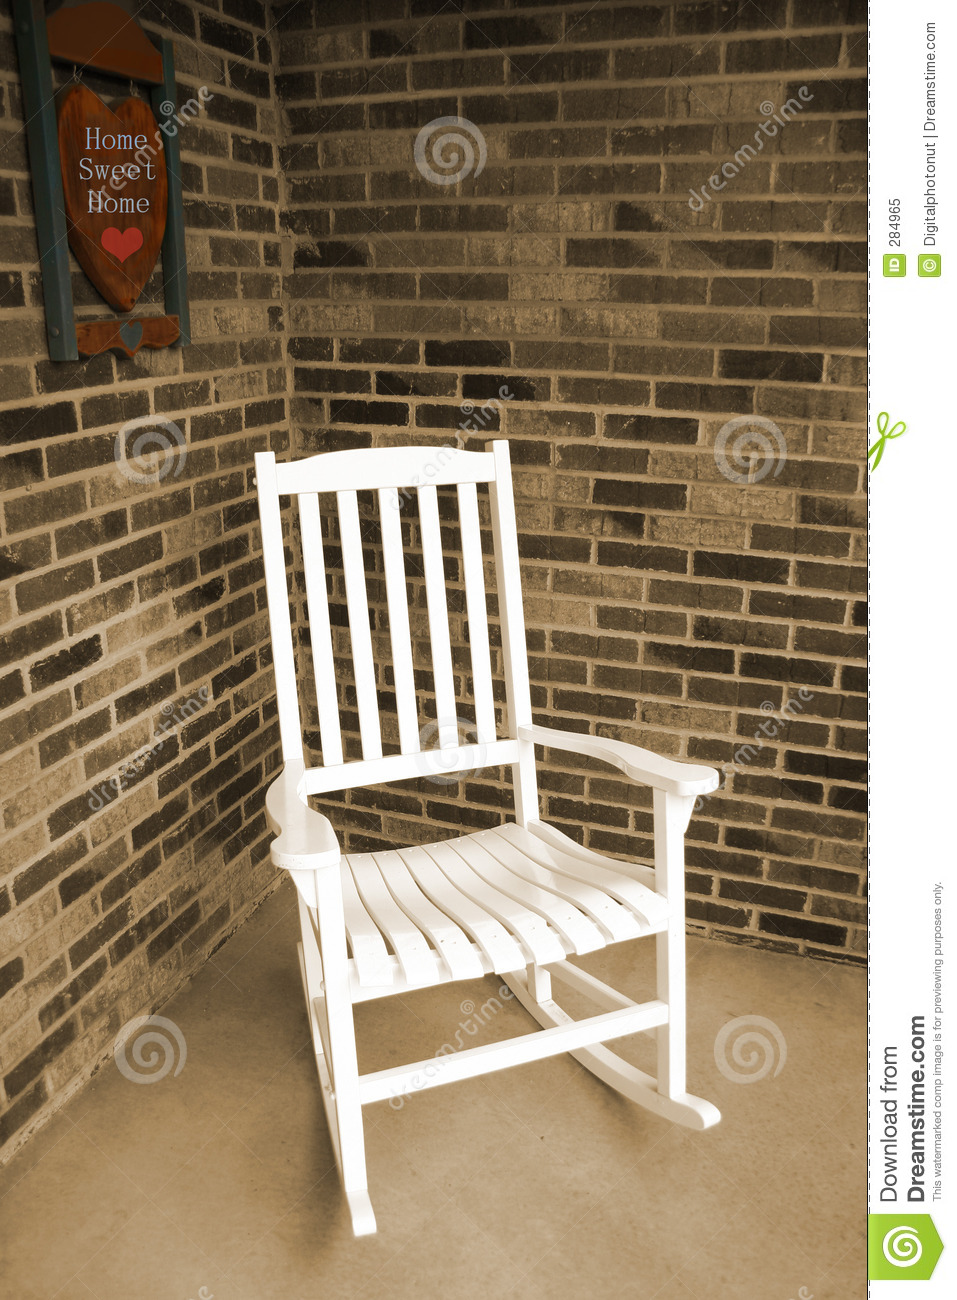 White Wooden Rocking Chair Stock Image Image Of Sweet